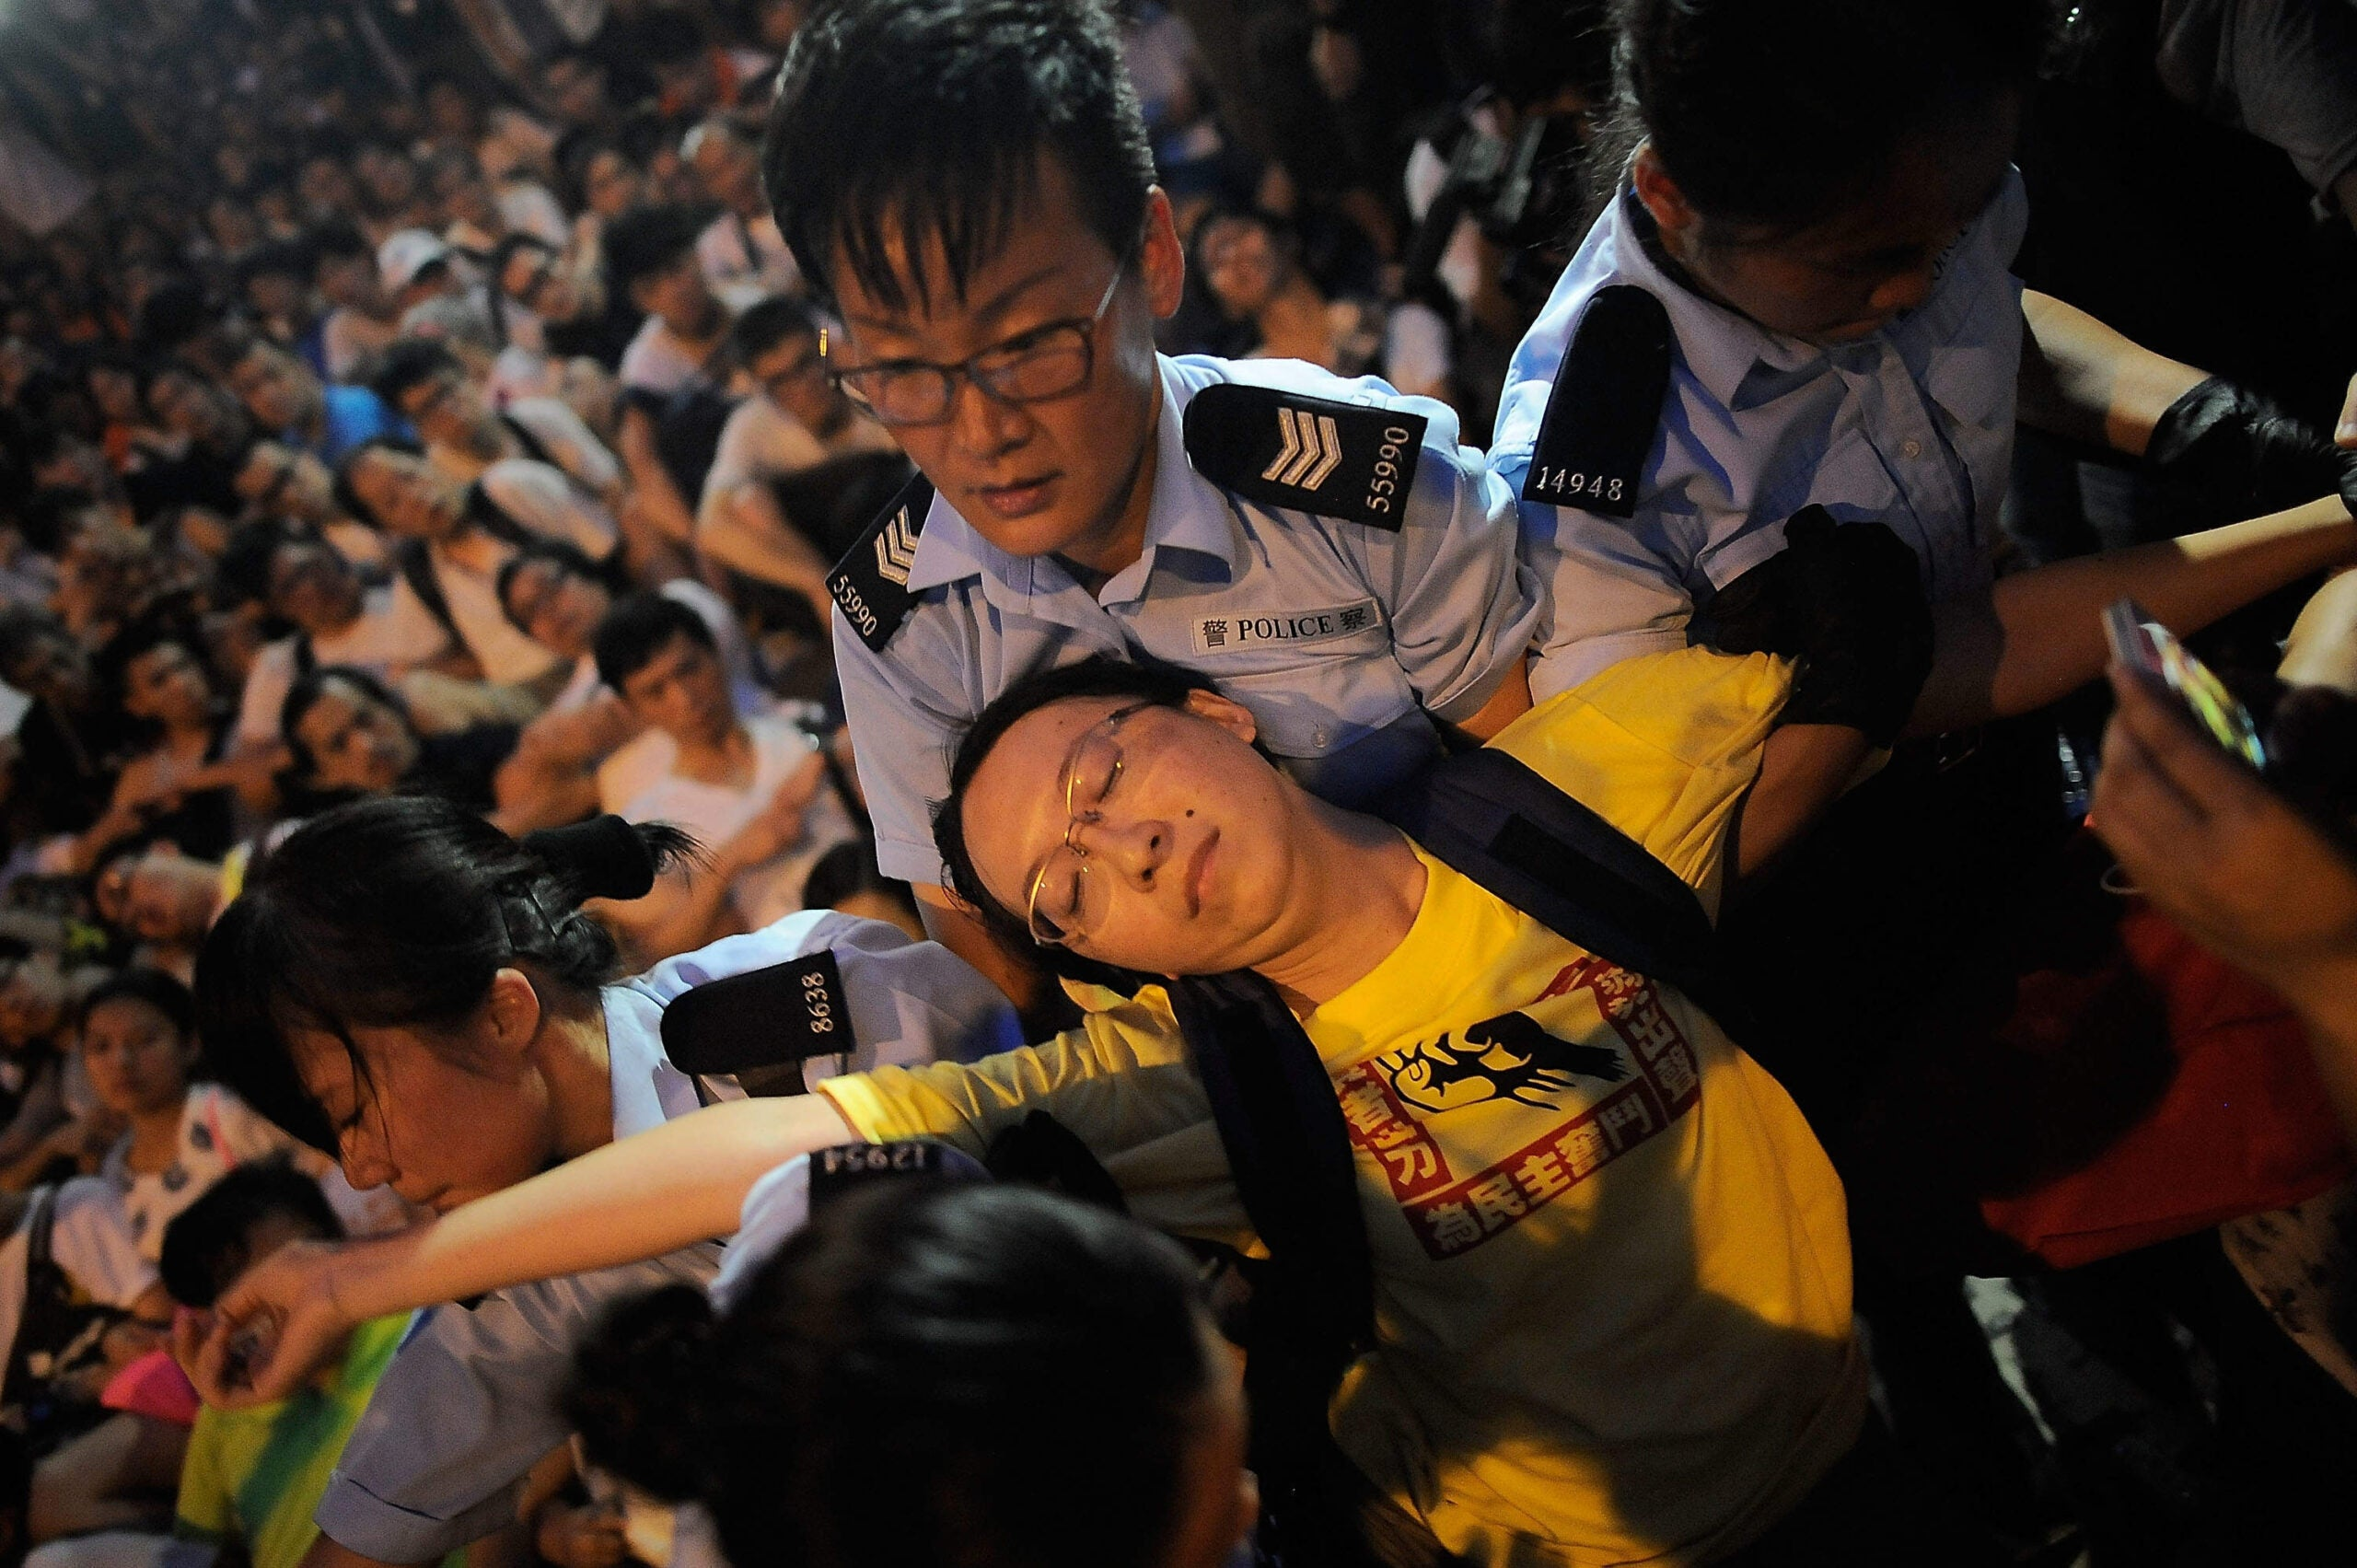 The fight for democracy and liberty in Hong Kong